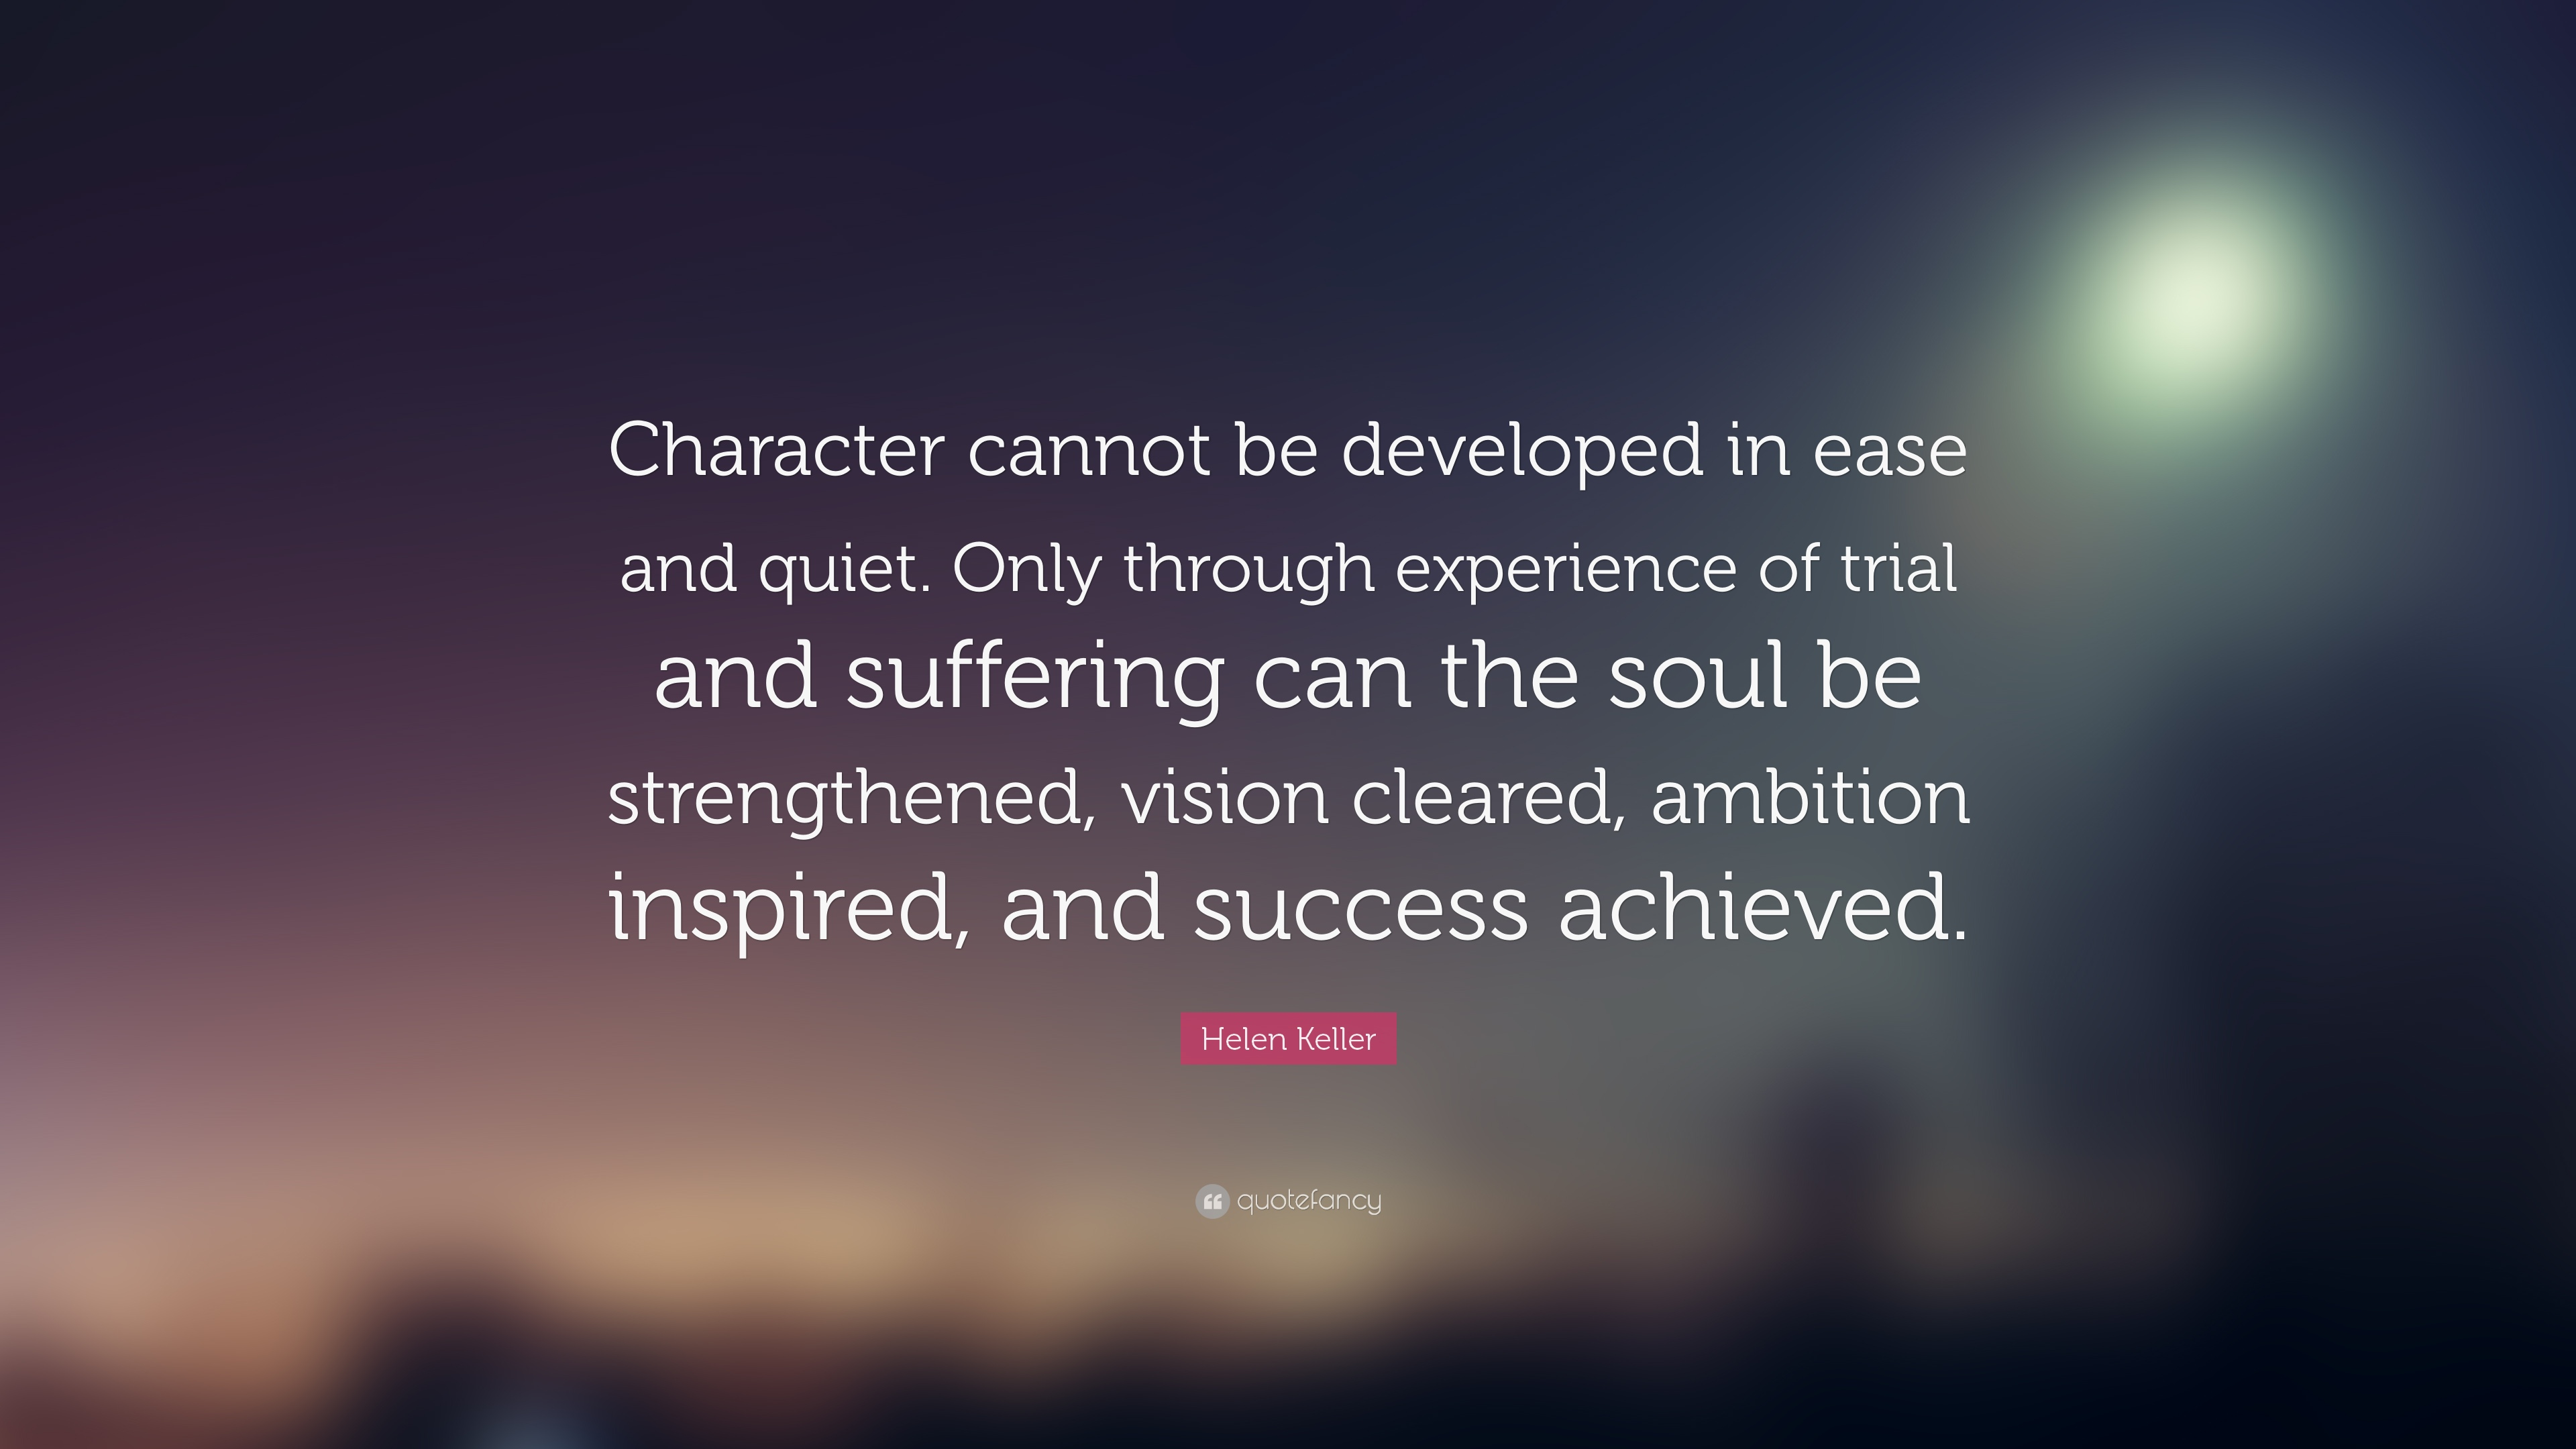 Education: Molding Character